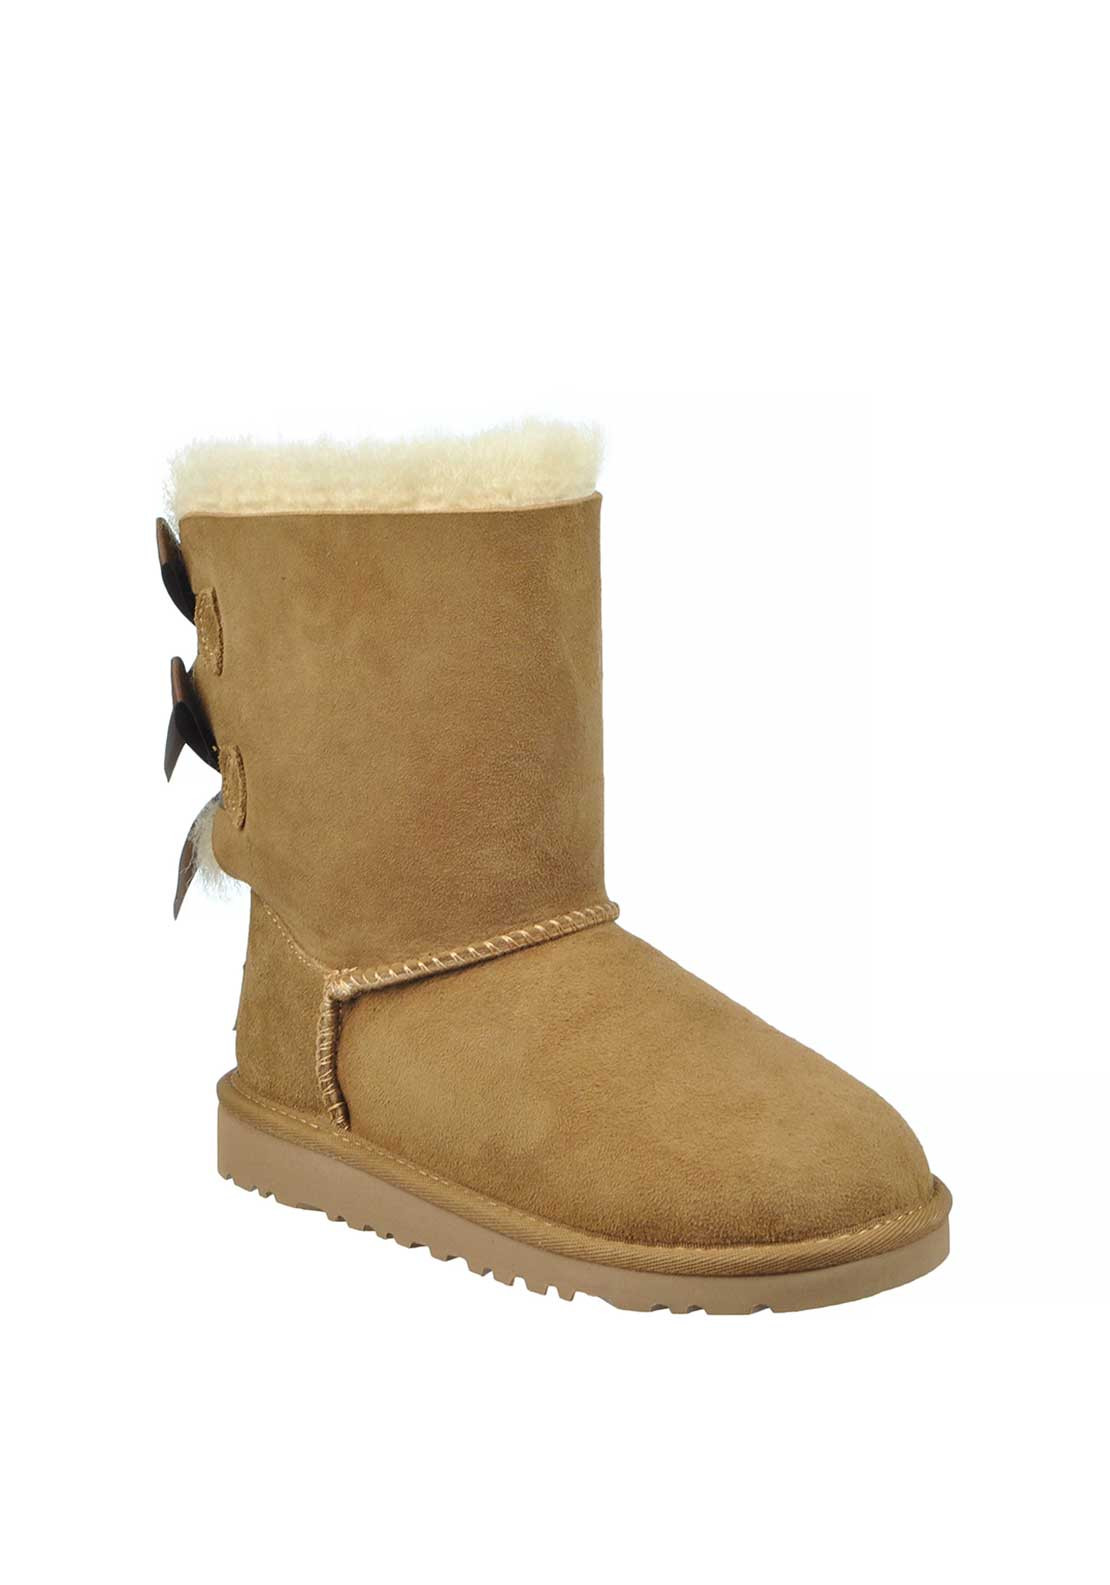 uggs return policy nordstrom